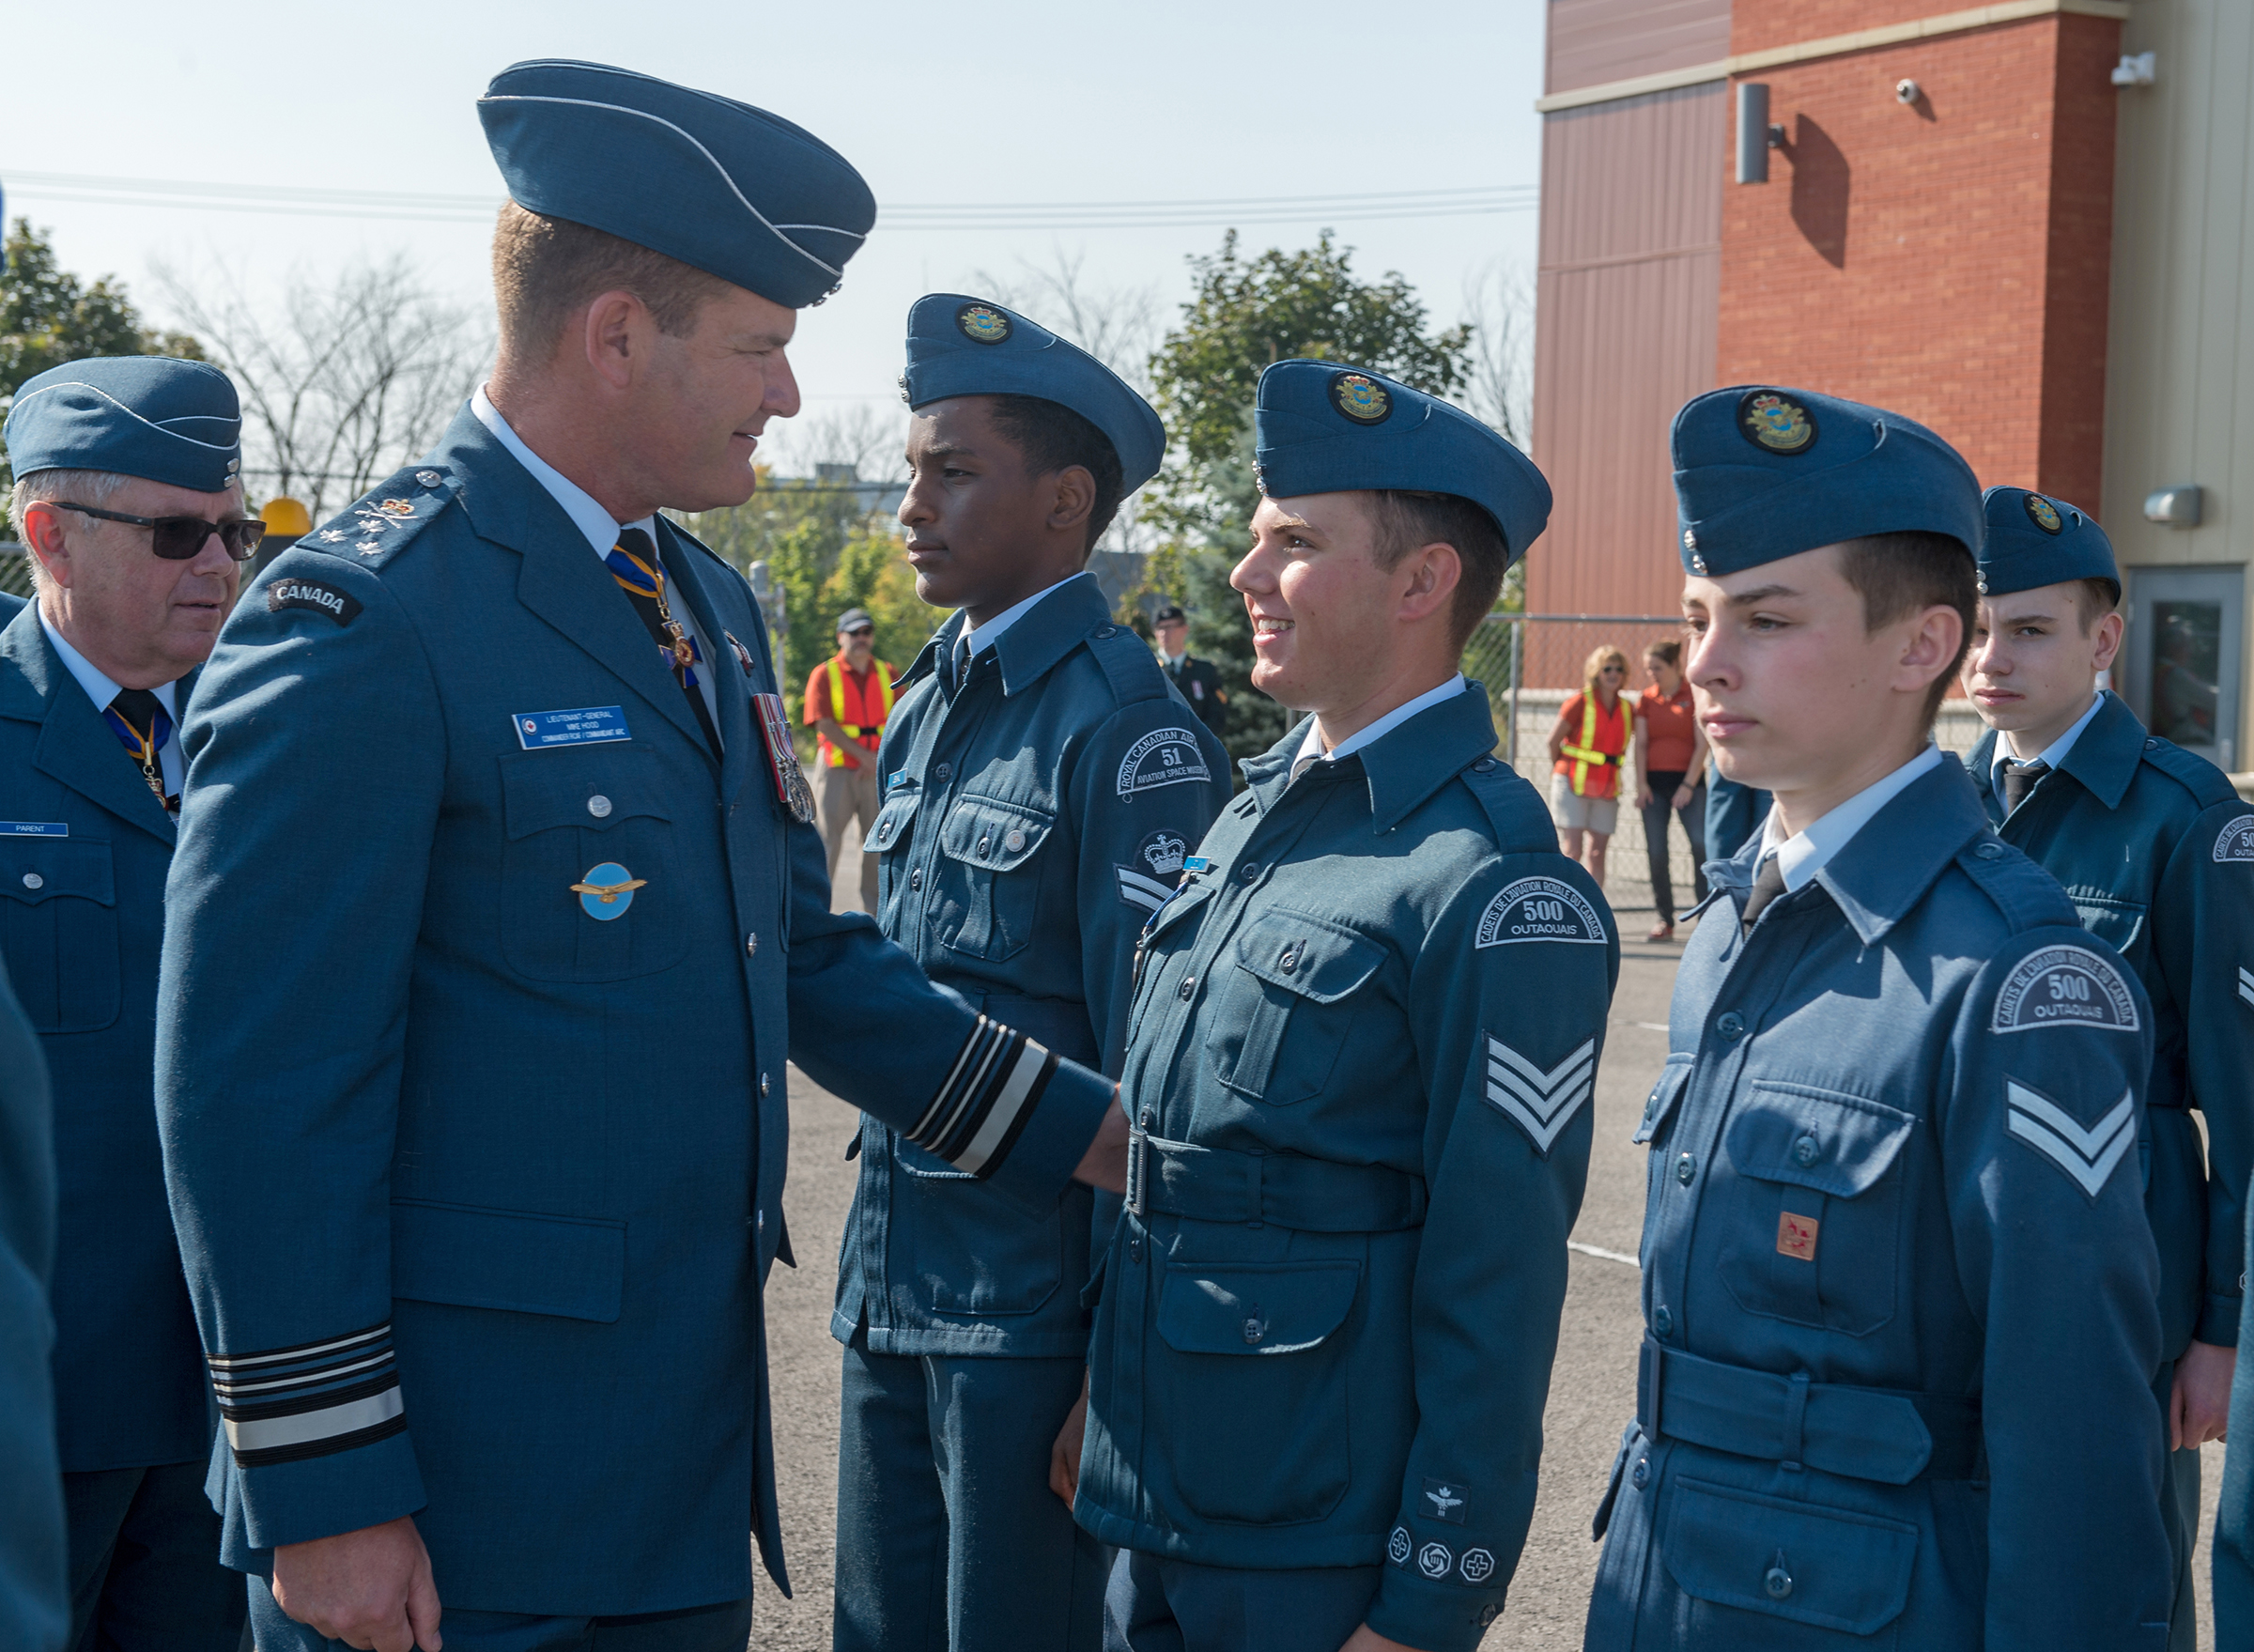 Lieutenant-General Michael Hood speaks to air cadets on parade during the national Battle of Britain commemorative ceremony in Gatineau, Quebec, on September 17, 2017. Cadets from a number of National Capital Region cadet squadrons, including 5 Cyclone, 51 Canadian Aviation and Space Museum, 75 Barrhaven, 500 Outaouais, 632 Phoenix, 742 National Capital, 832 Twillick and 872 Kanata Squadrons, took part in the event. PHOTO: Corporal Michael J. MacIsaac, SU12-2017-1086-015